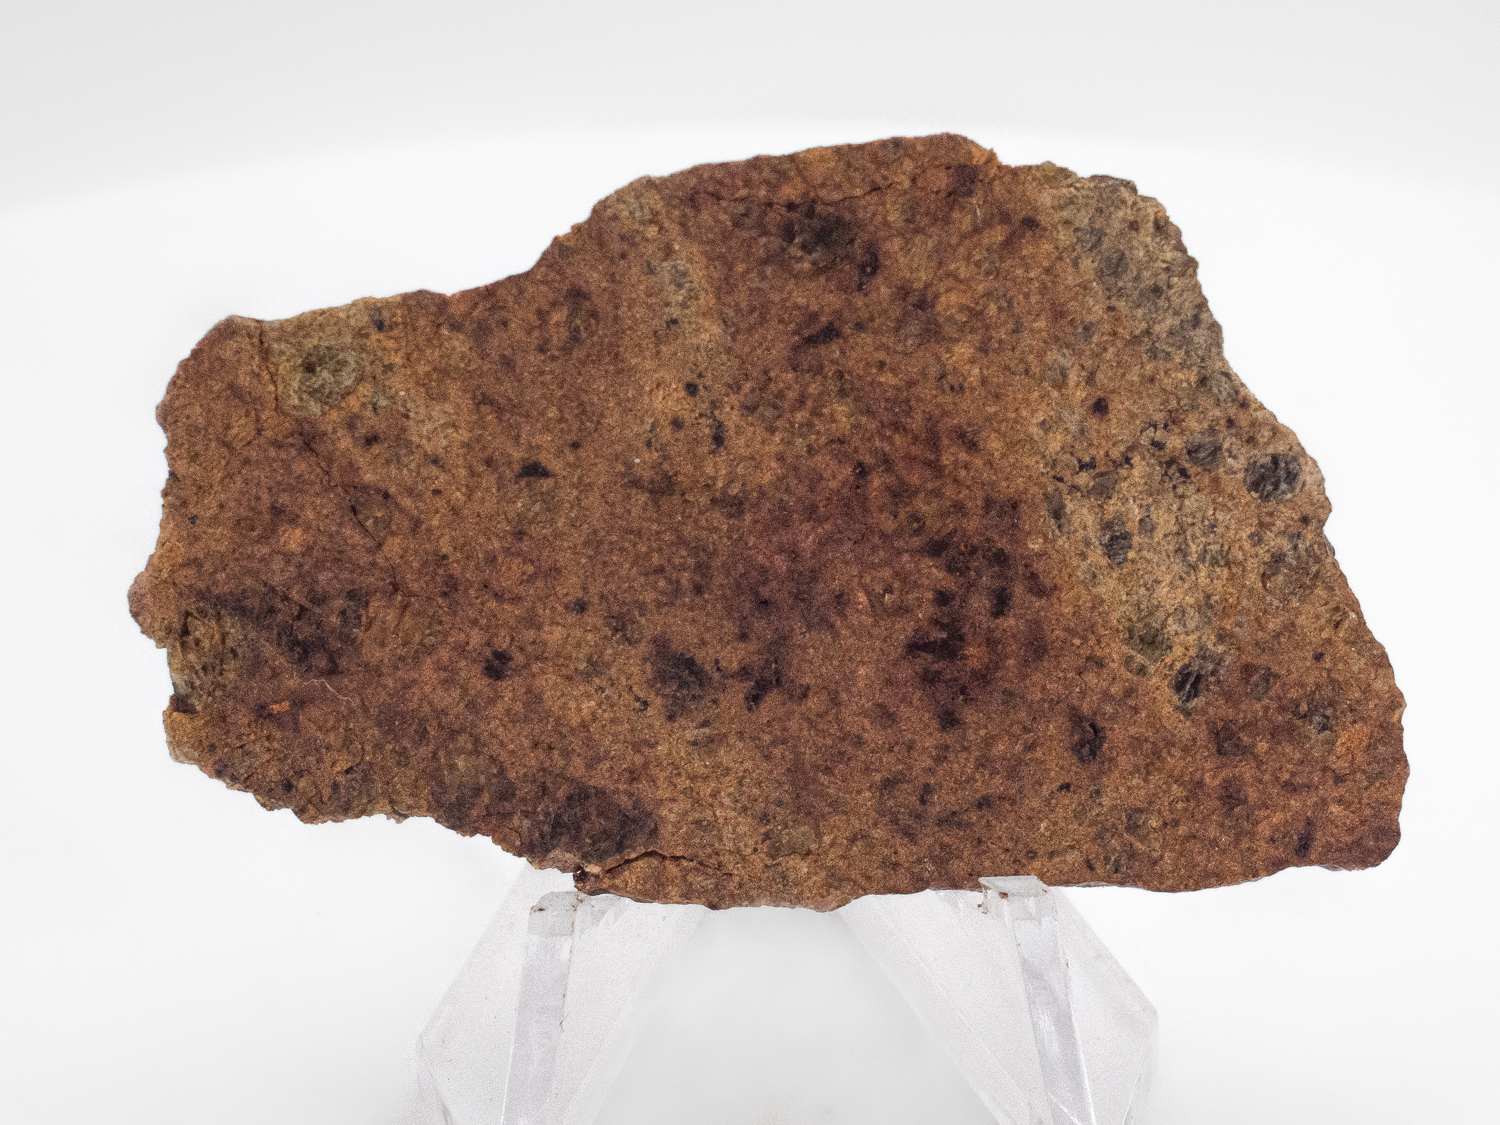 diogenite meteorite 12g